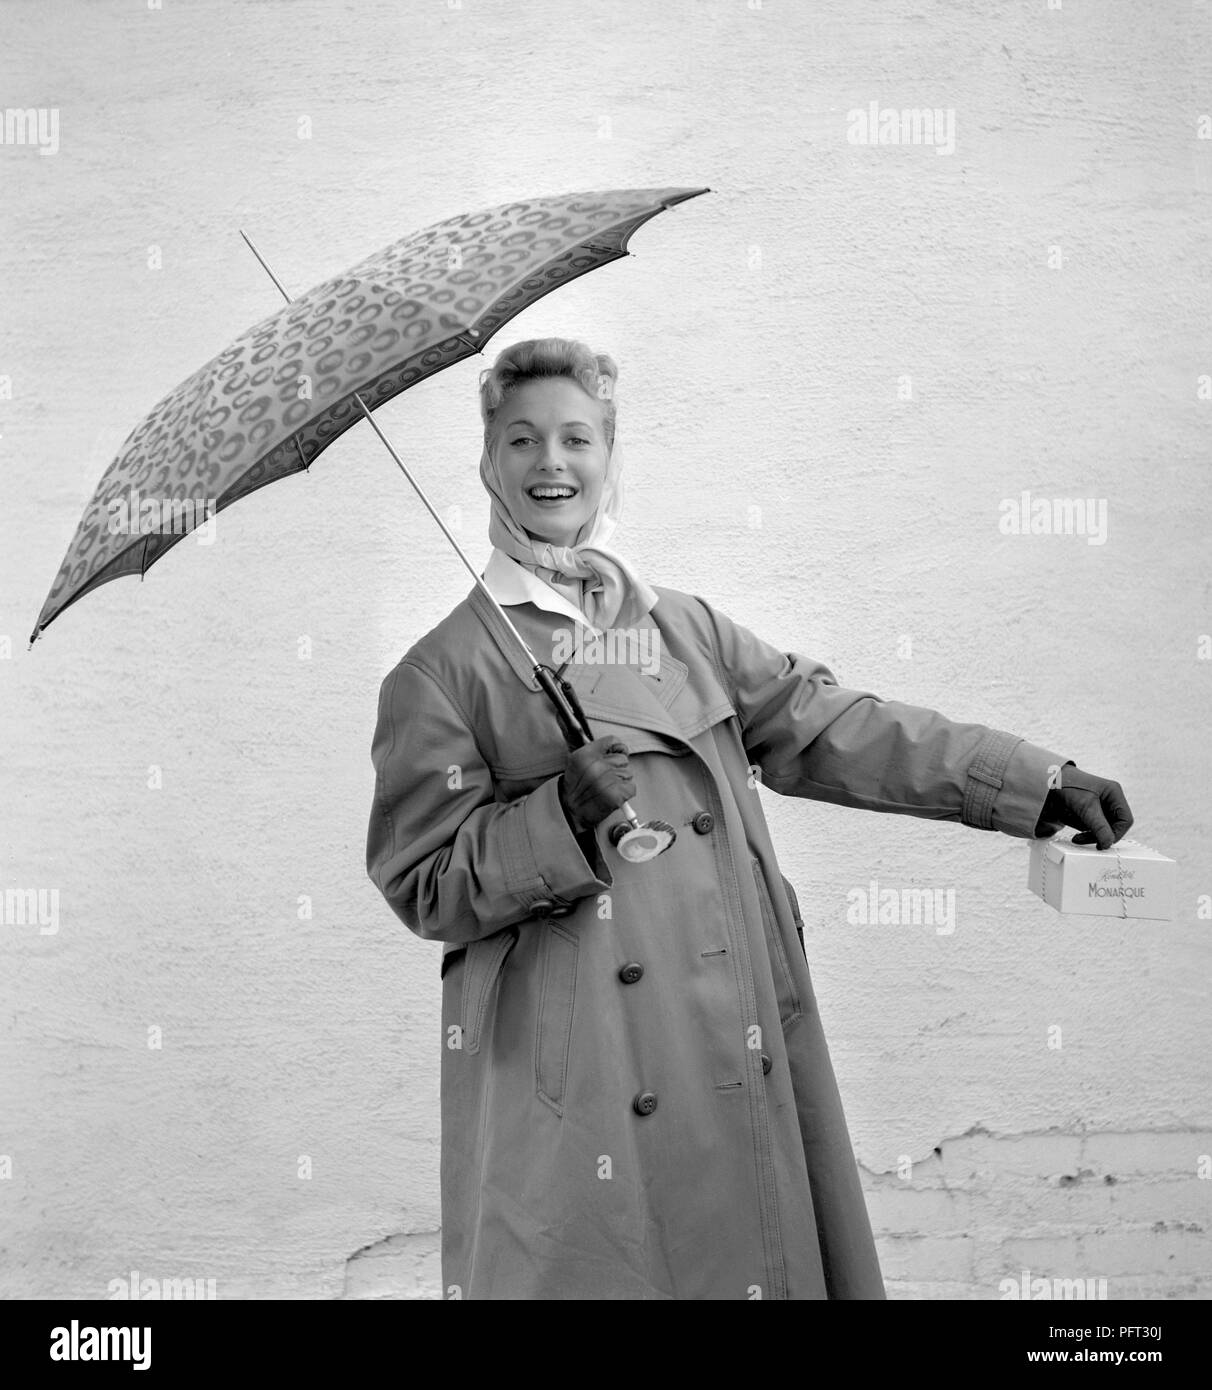 50s Fashion Stock Photos & 50s Fashion Stock Images - Alamy